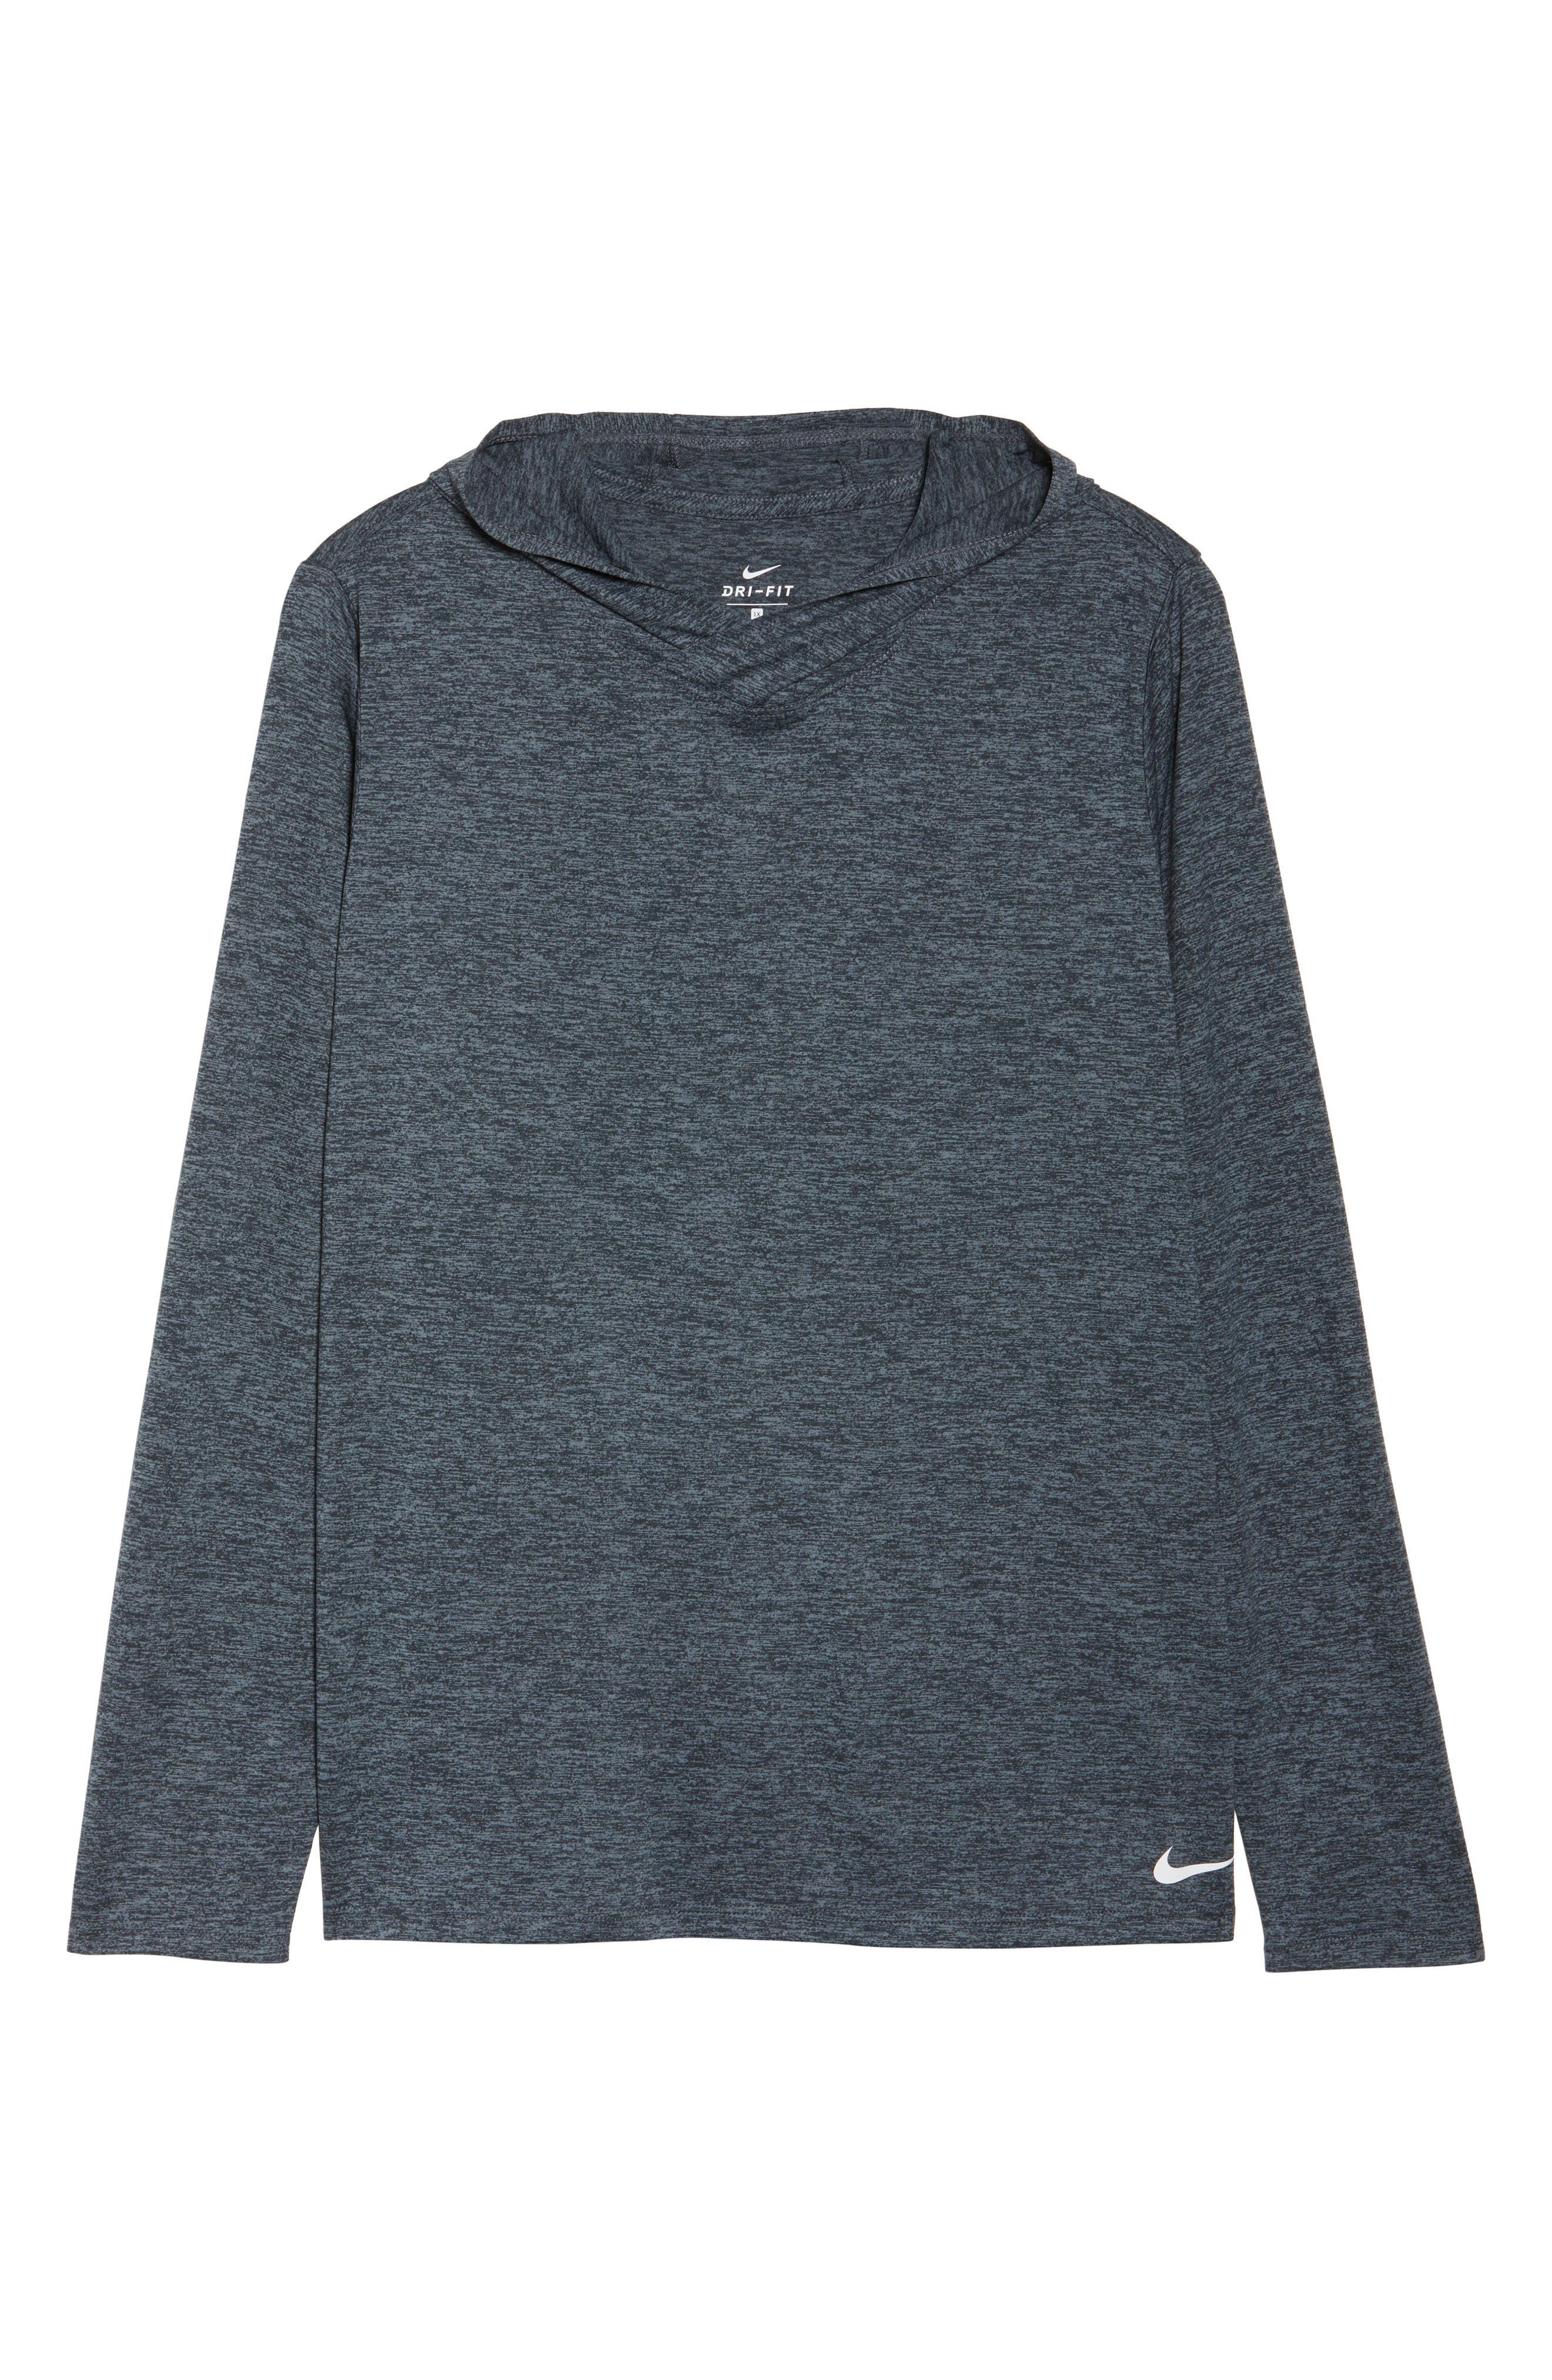 Dry Training Hoodie,                             Alternate thumbnail 8, color,                             Black/ Cool Grey/ White